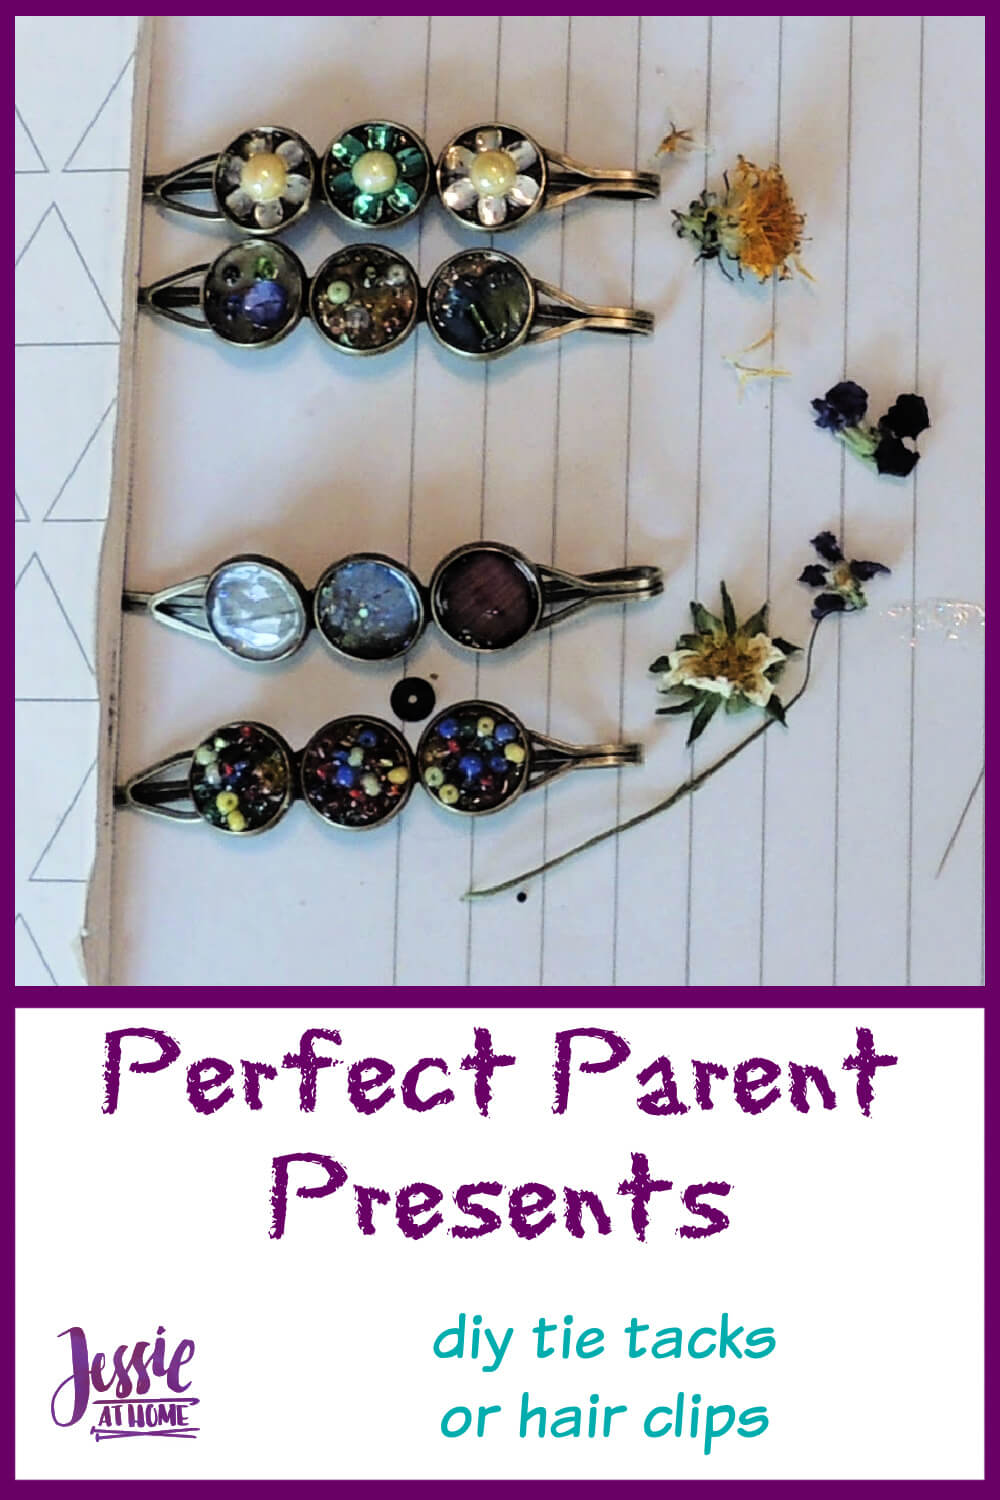 Perfect Parent Presents - Make Your Folx Particularly Proud